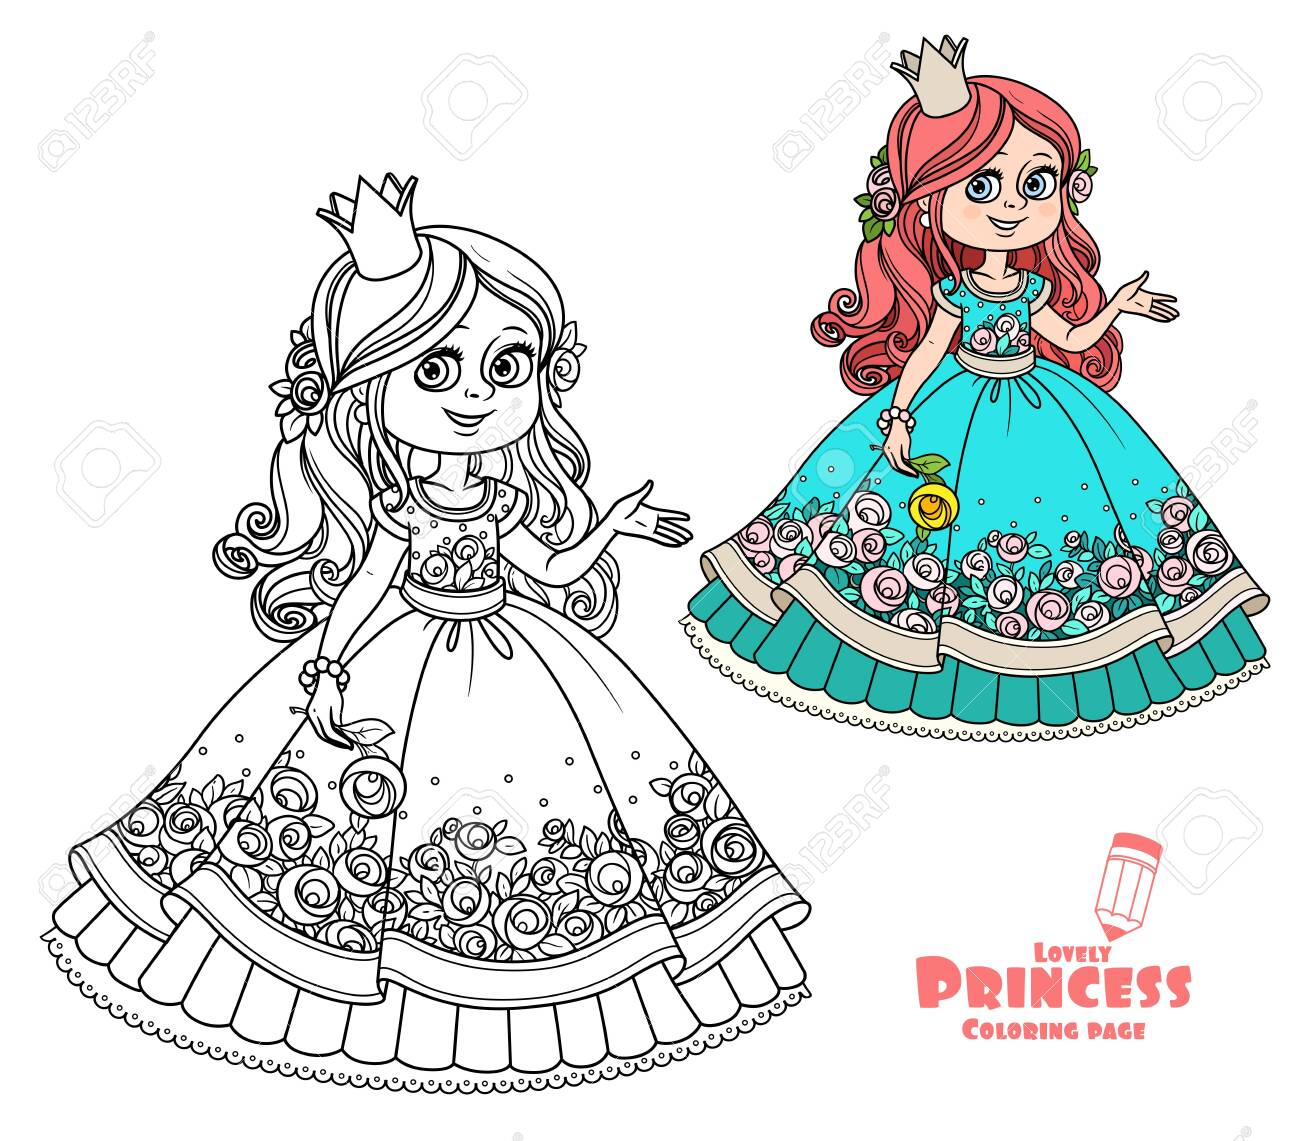 Princess With Rose In Hand Color And Outlined Picture For Coloring Royalty Free Cliparts Vectors And Stock Illustration Image 138669358